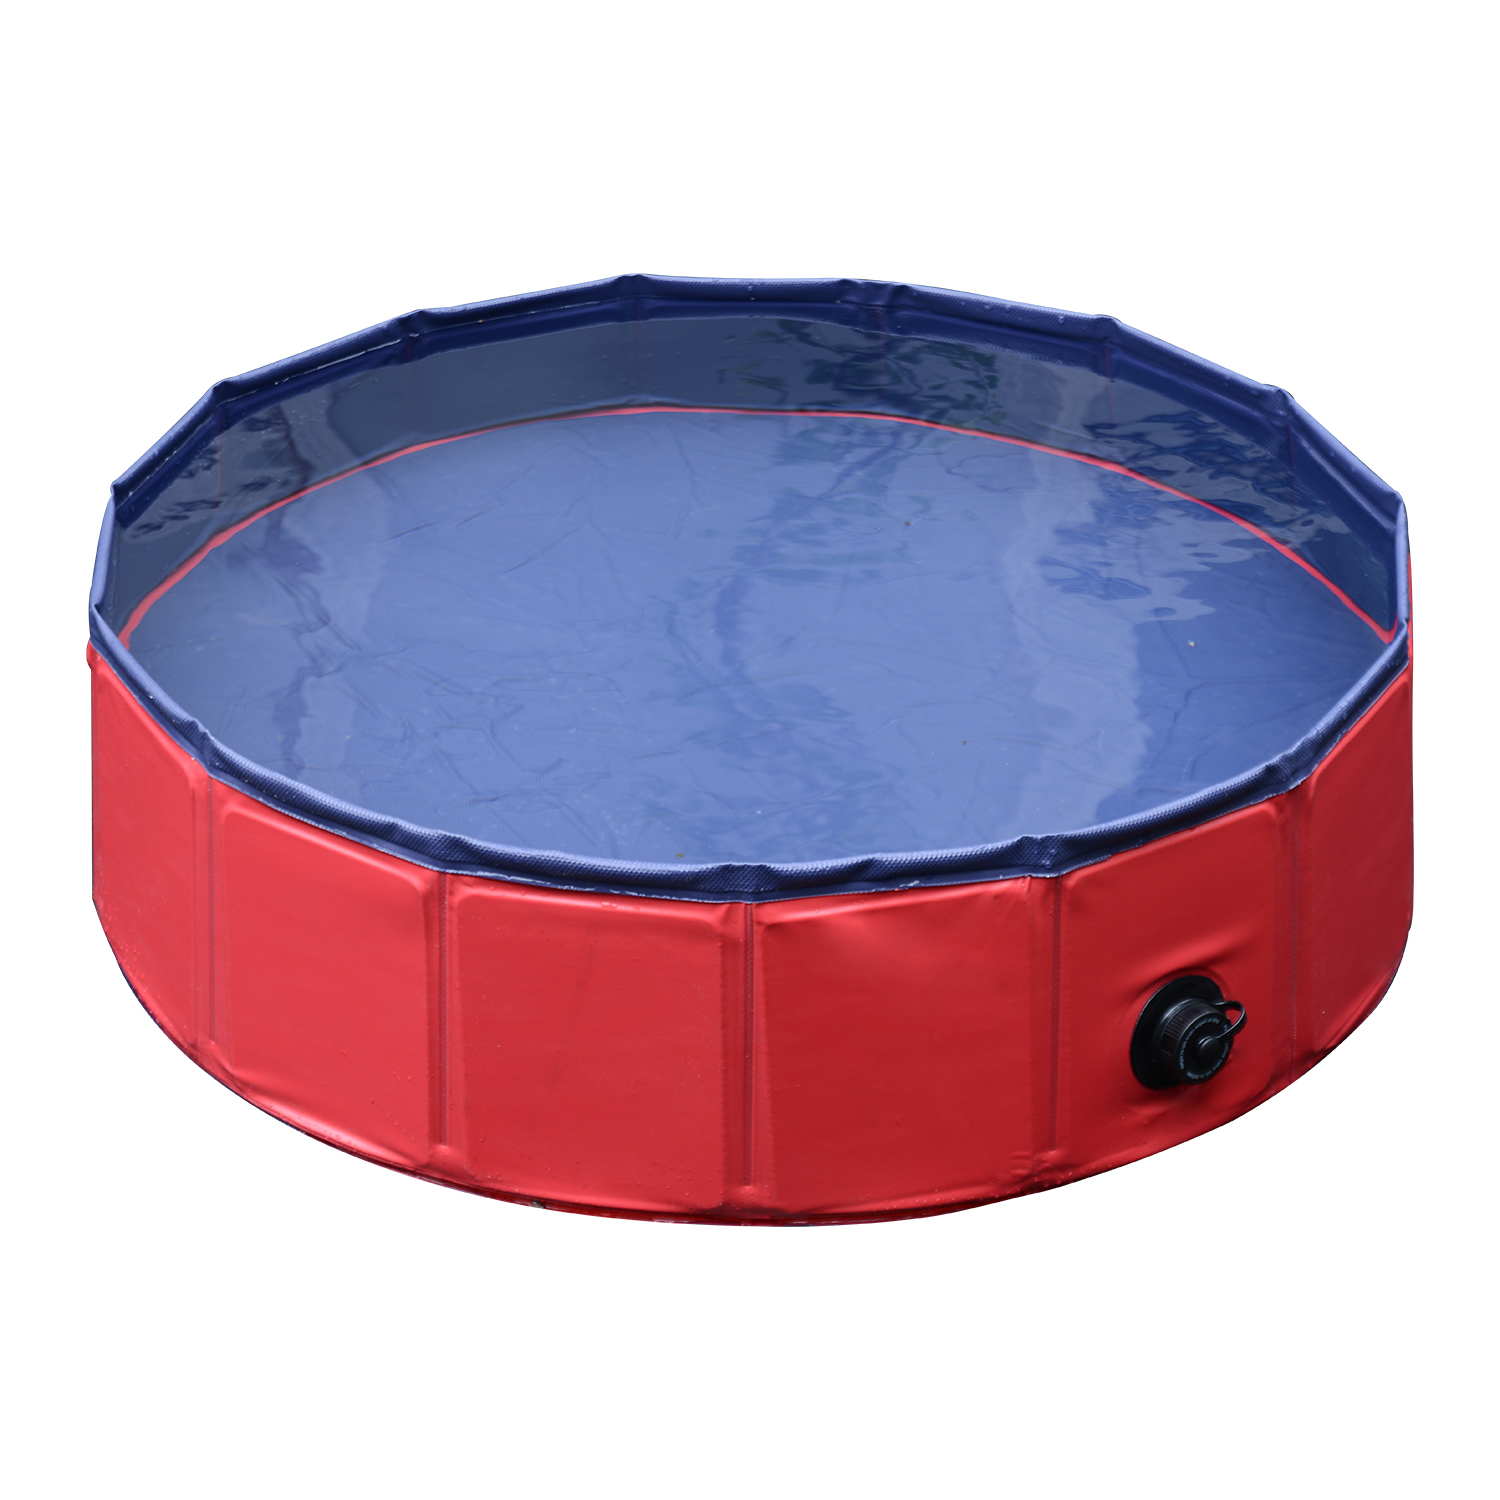 Pawhut 12 x 47 Foldable PVC Pet Swimming Pool Red and Blue by Aosom